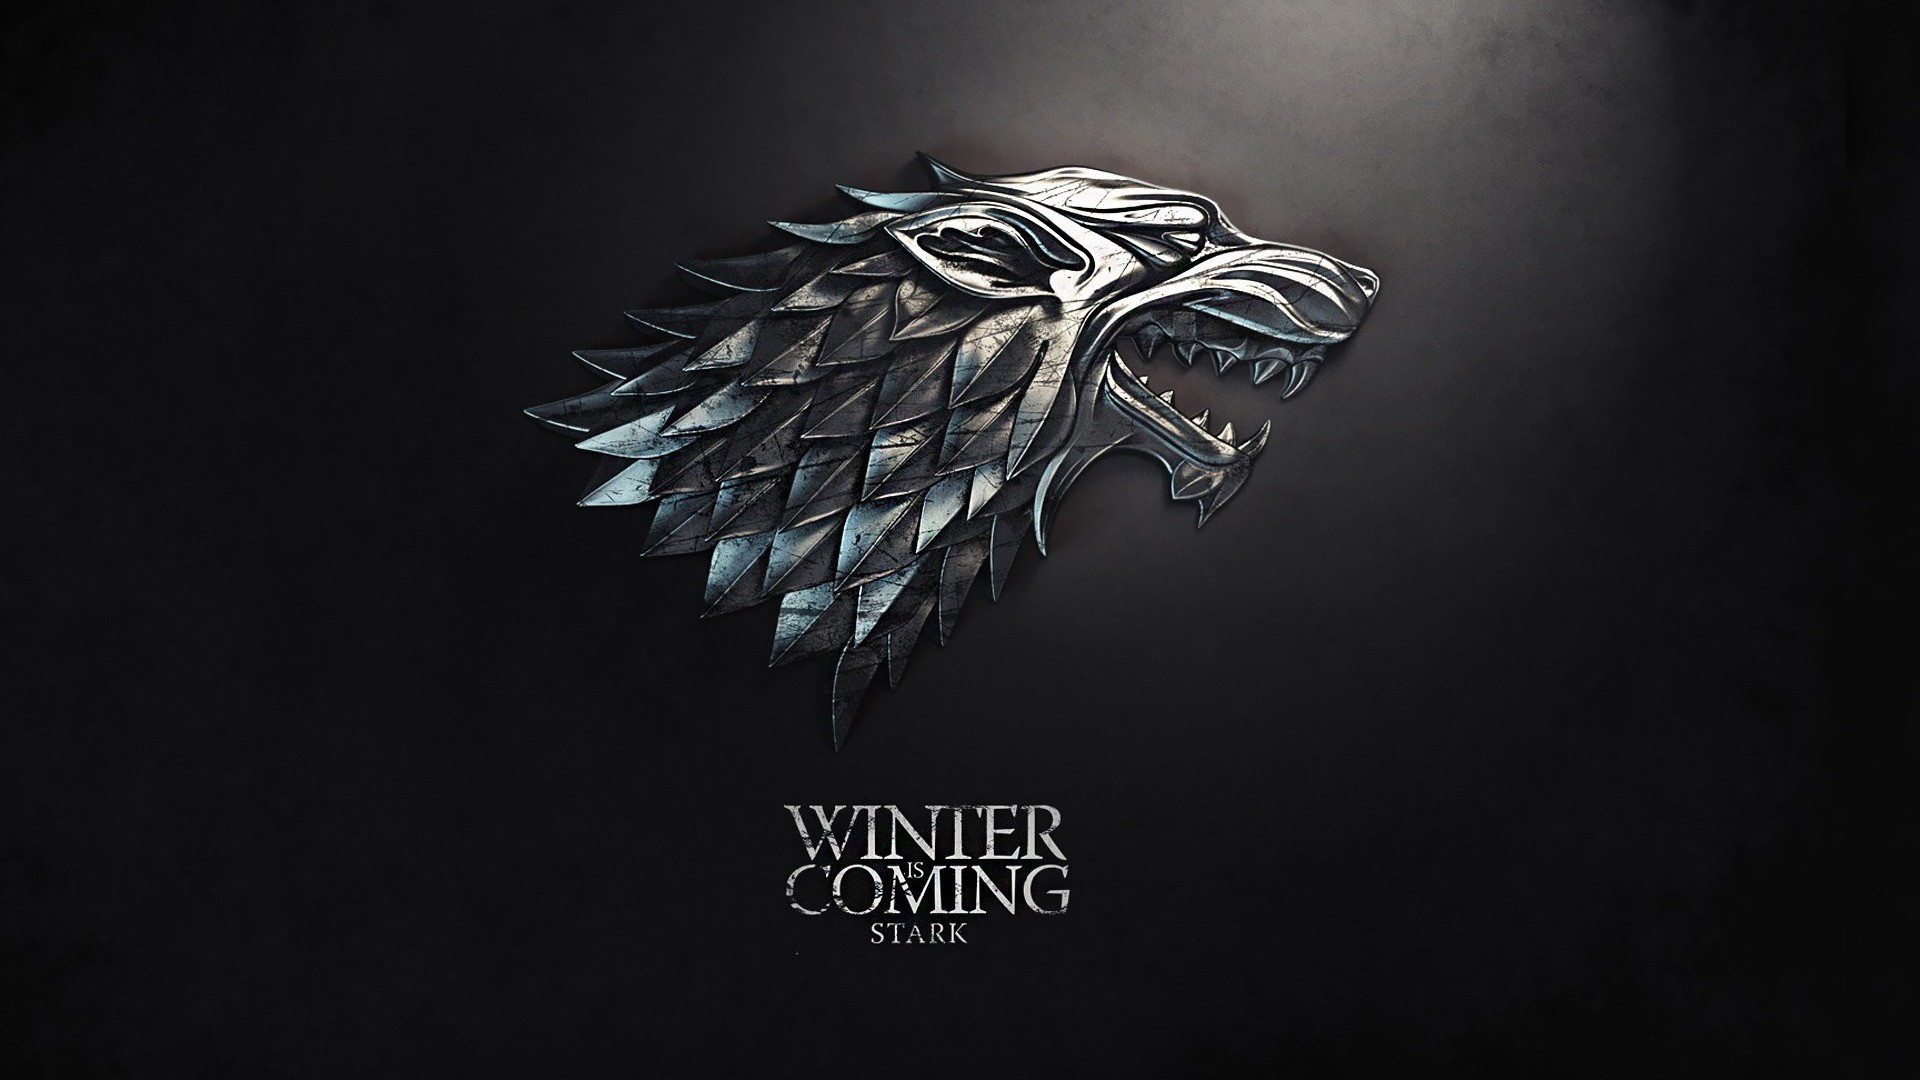 1920x1080 Fonds d'écran Game Of Thrones : tous les wallpapers Game Of Thrones